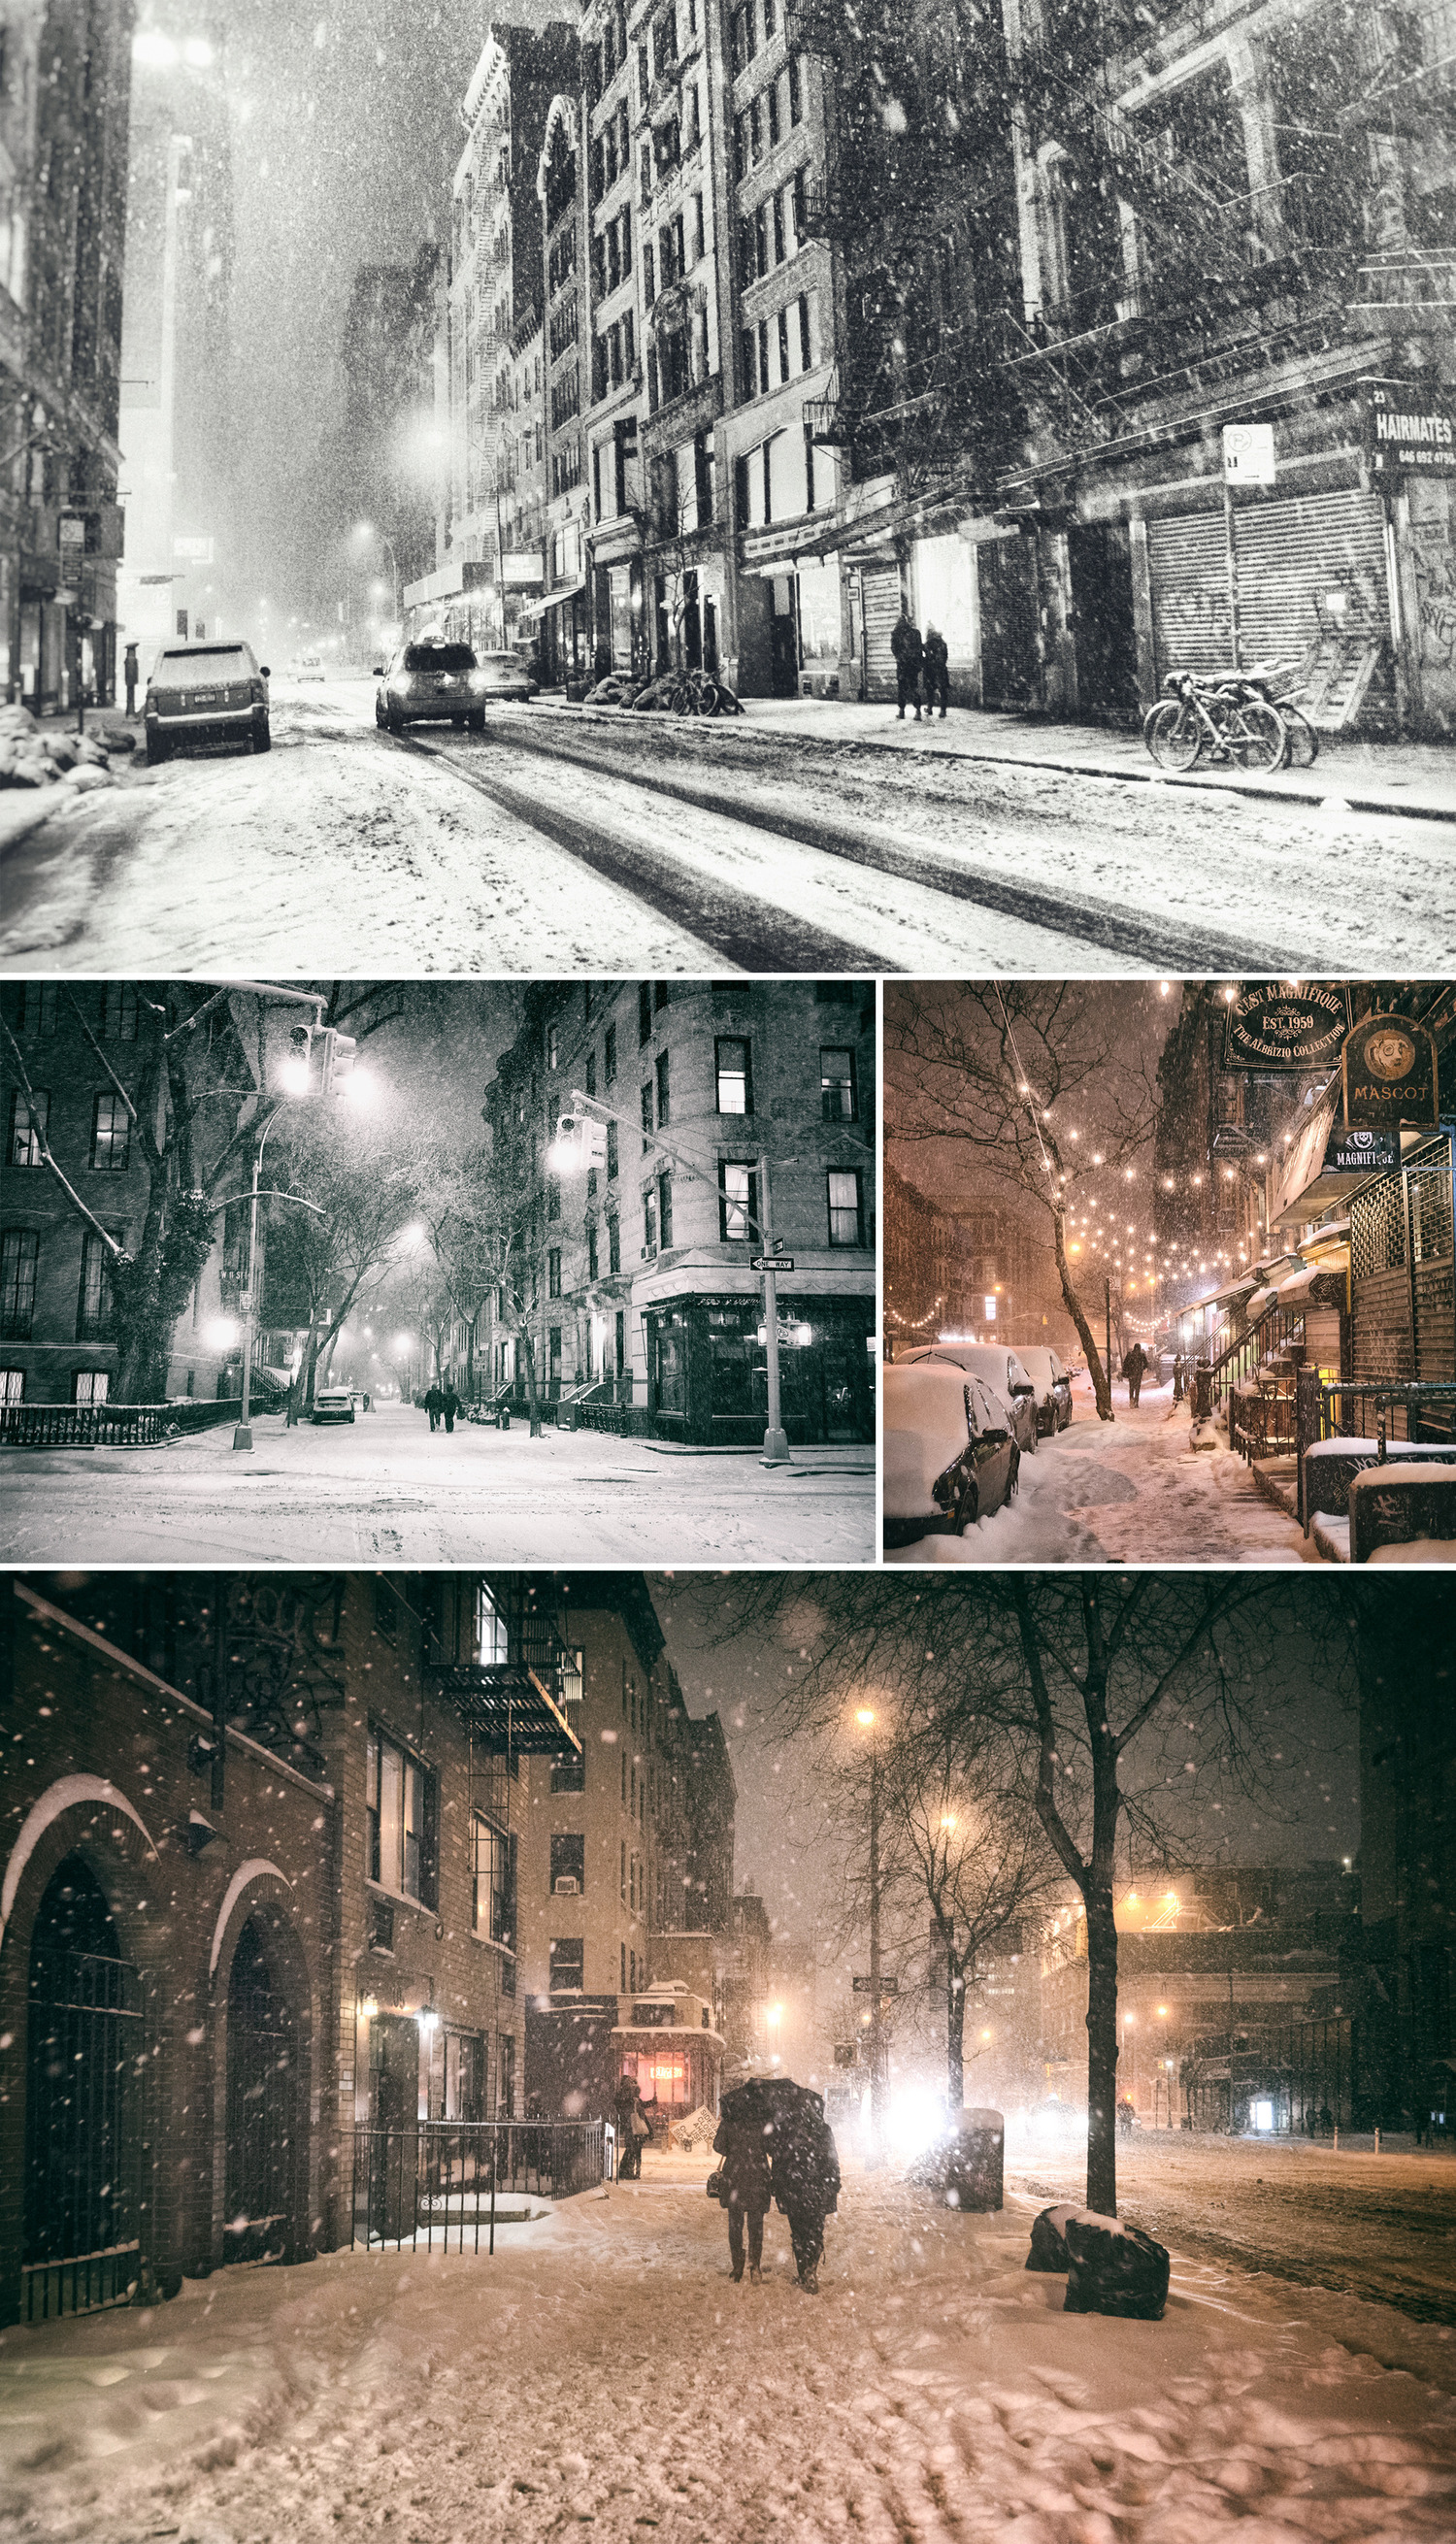 Winter nights are when nostalgia wraps around you like a blanket